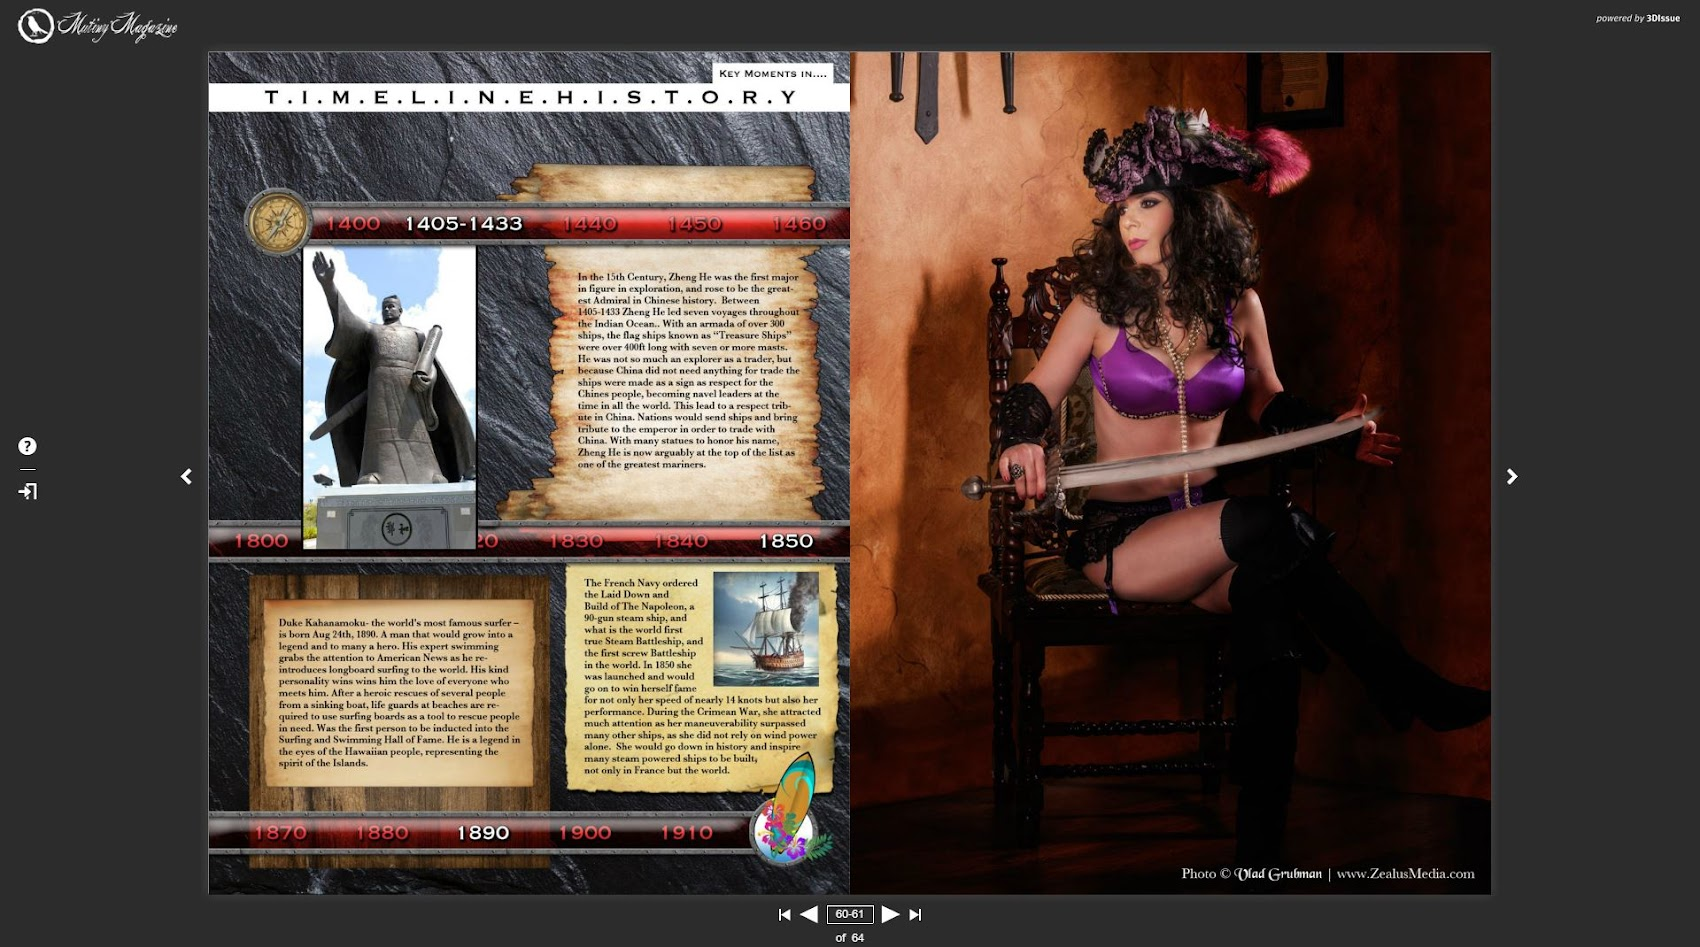 Pirate Swords and Lingerie - published by Mutiny Magazine - photography by Vlad Grubman